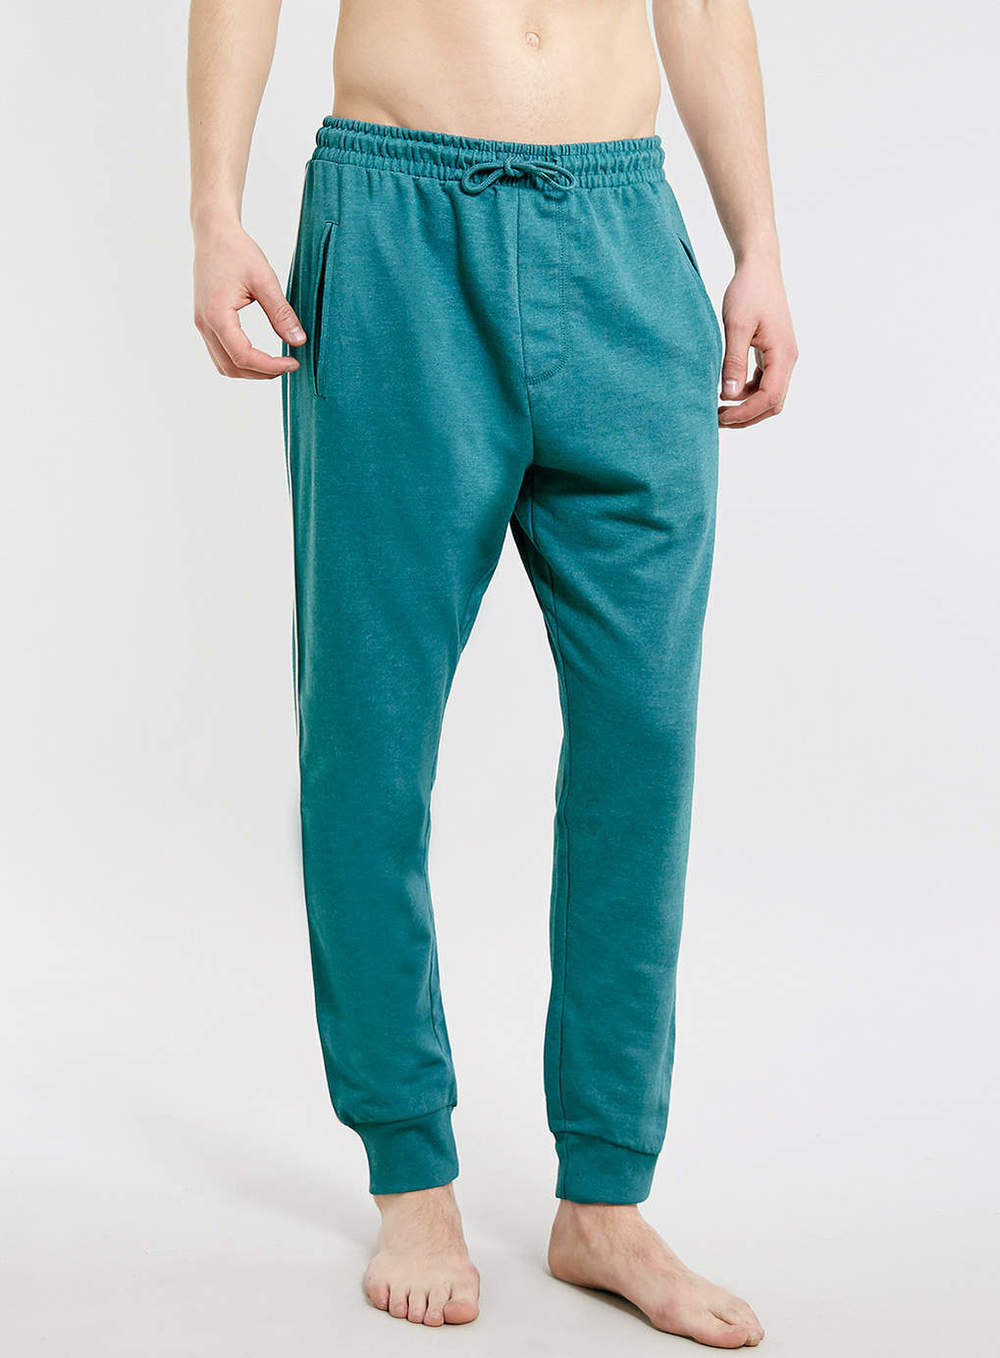 Topman Teal Marl Joggers   Was $40,  now $12